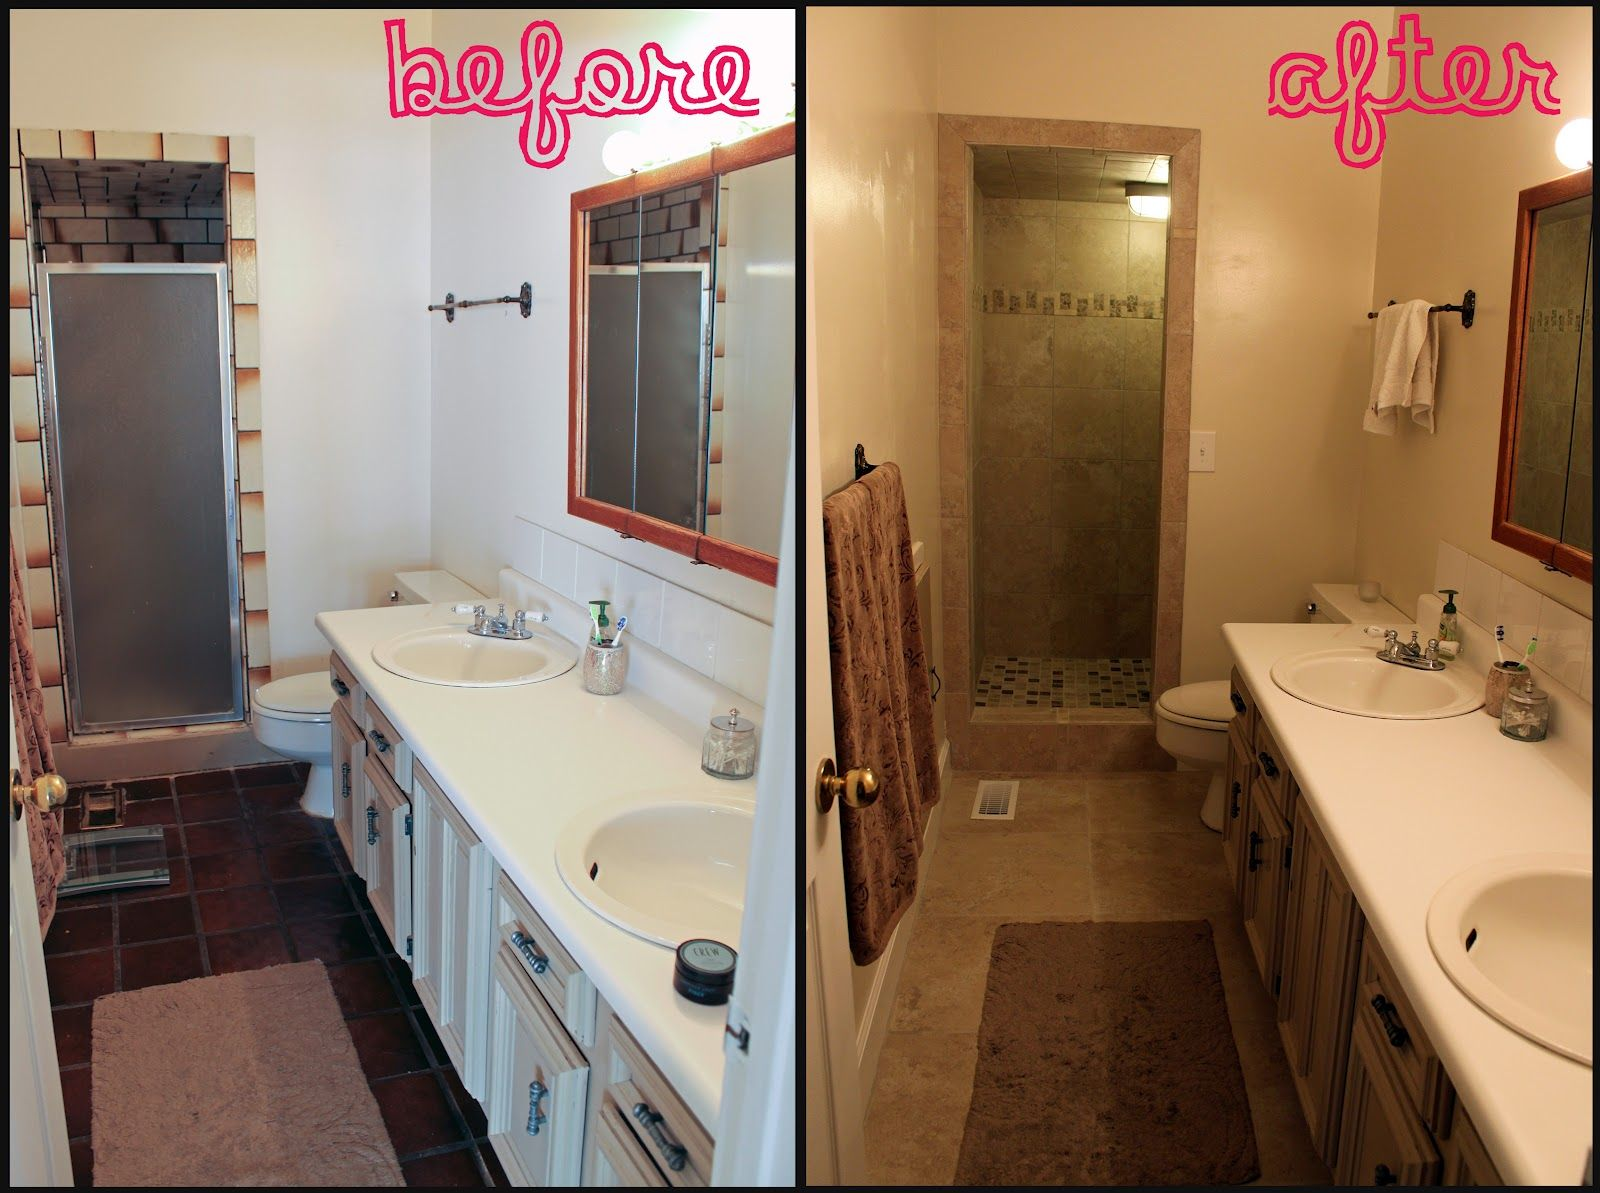 Tulsa Bathroom Remodeling how to remodel a bathroom in a mobile home youtube. mobile home